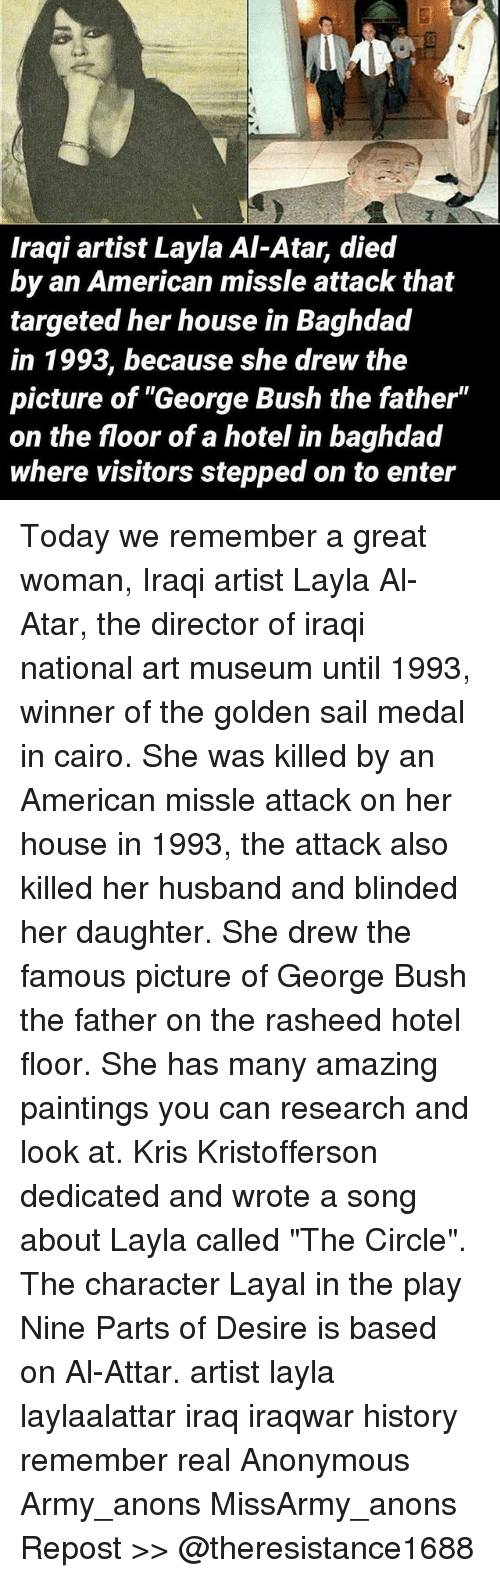 """layla: LIME  Iraqi artist Layla Al-Atar, died  by an American missle attack that  targeted her house in Baghdad  in 1993, because she drew the  picture of """"George Bush the father""""  on the floor of a hotel in baghdad  where visitors stepped on to enter Today we remember a great woman, Iraqi artist Layla Al-Atar, the director of iraqi national art museum until 1993, winner of the golden sail medal in cairo. She was killed by an American missle attack on her house in 1993, the attack also killed her husband and blinded her daughter. She drew the famous picture of George Bush the father on the rasheed hotel floor. She has many amazing paintings you can research and look at. Kris Kristofferson dedicated and wrote a song about Layla called """"The Circle"""". The character Layal in the play Nine Parts of Desire is based on Al-Attar. artist layla laylaalattar iraq iraqwar history remember real Anonymous Army_anons MissArmy_anons Repost >> @theresistance1688"""